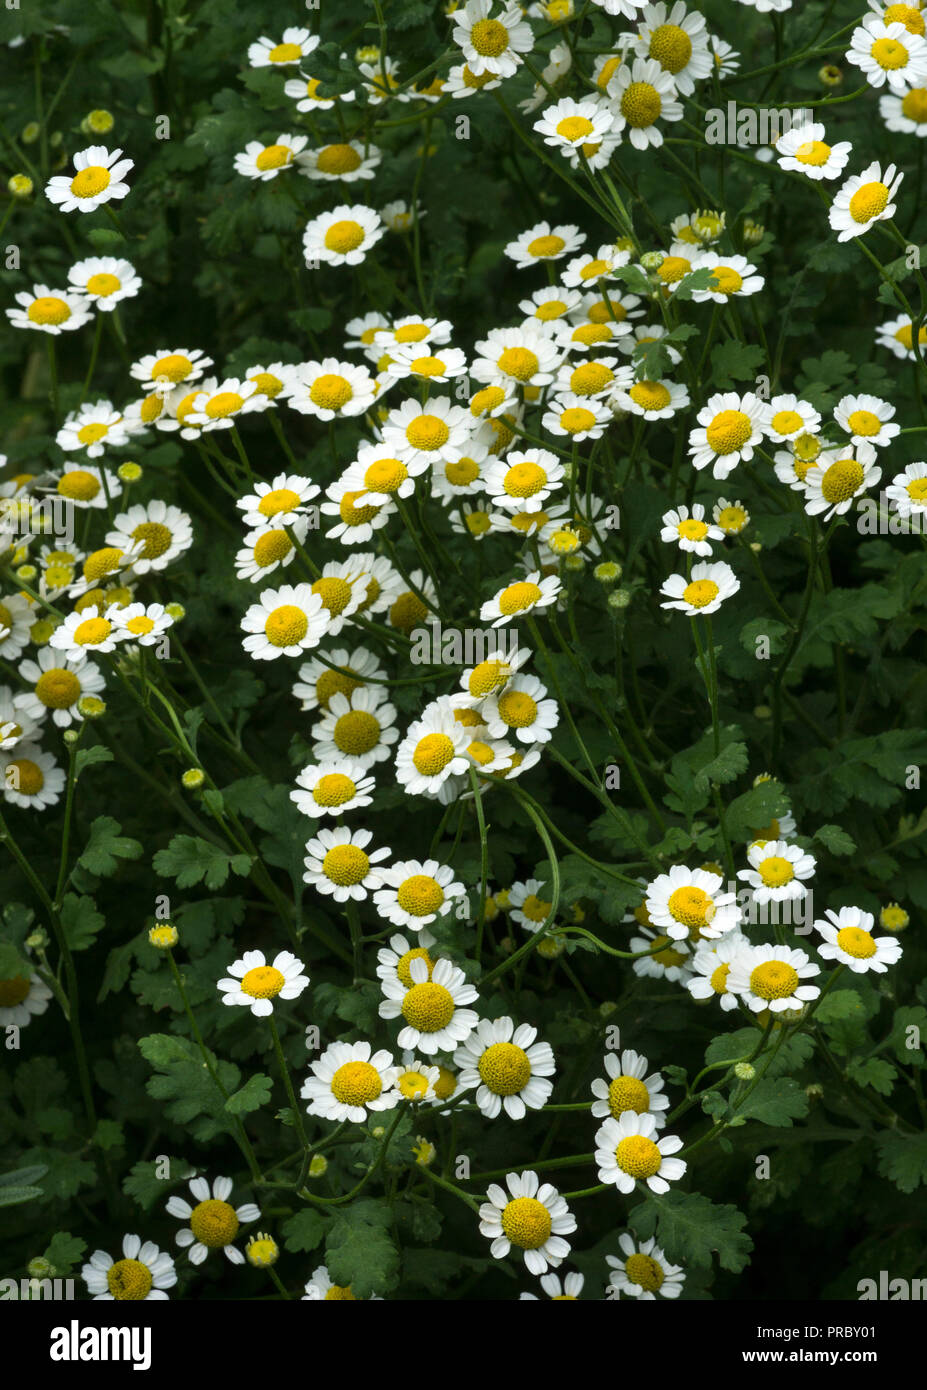 The Leaves and flowers of the medicinal herb Feverfew  (Tanacetum parthenium) growing in a garden situation. - Stock Image